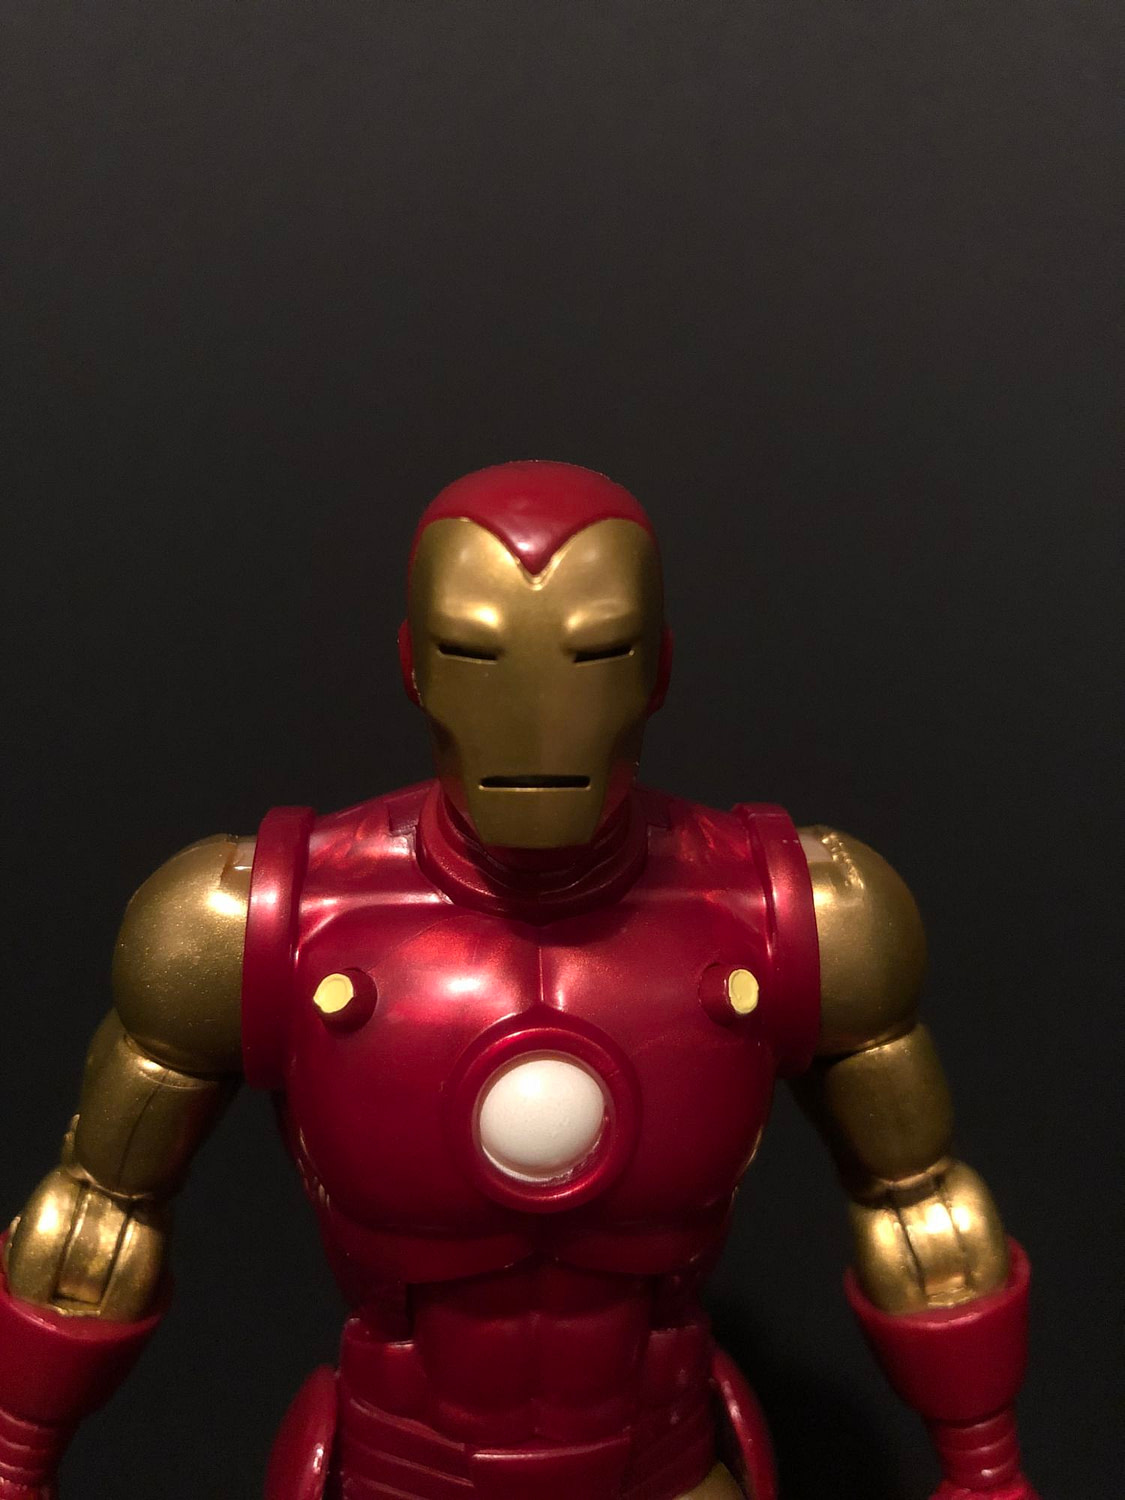 Marvel's 80th Anniversary Iron Man Marvel Legends Figure [Review]